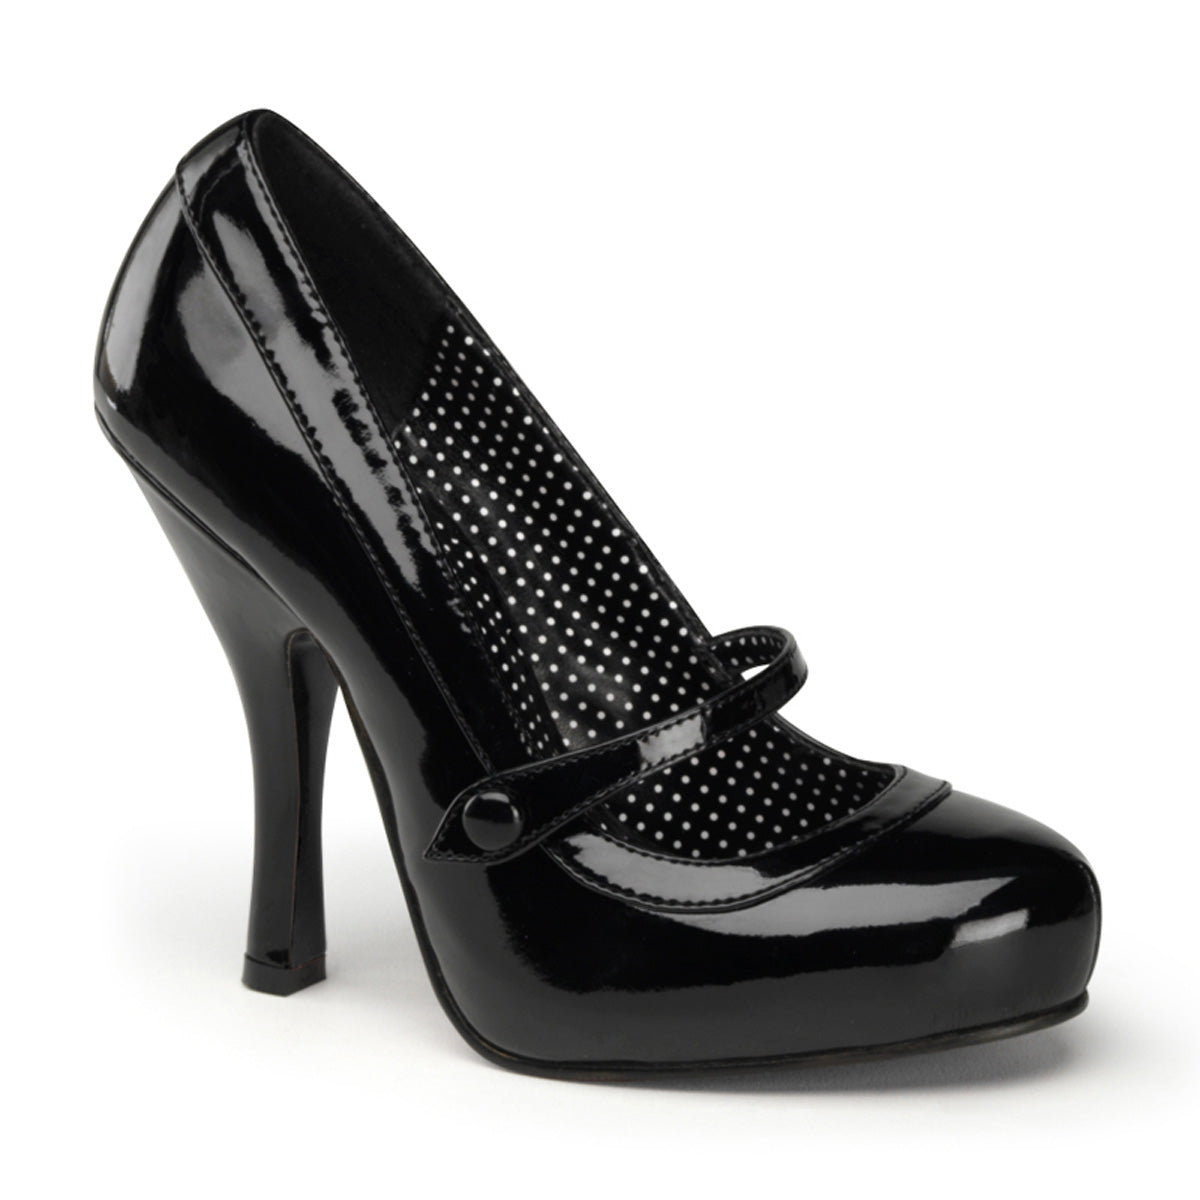 "4 1/2"" Heel, 3/4"" Hidden PF Mary Jane Pump"